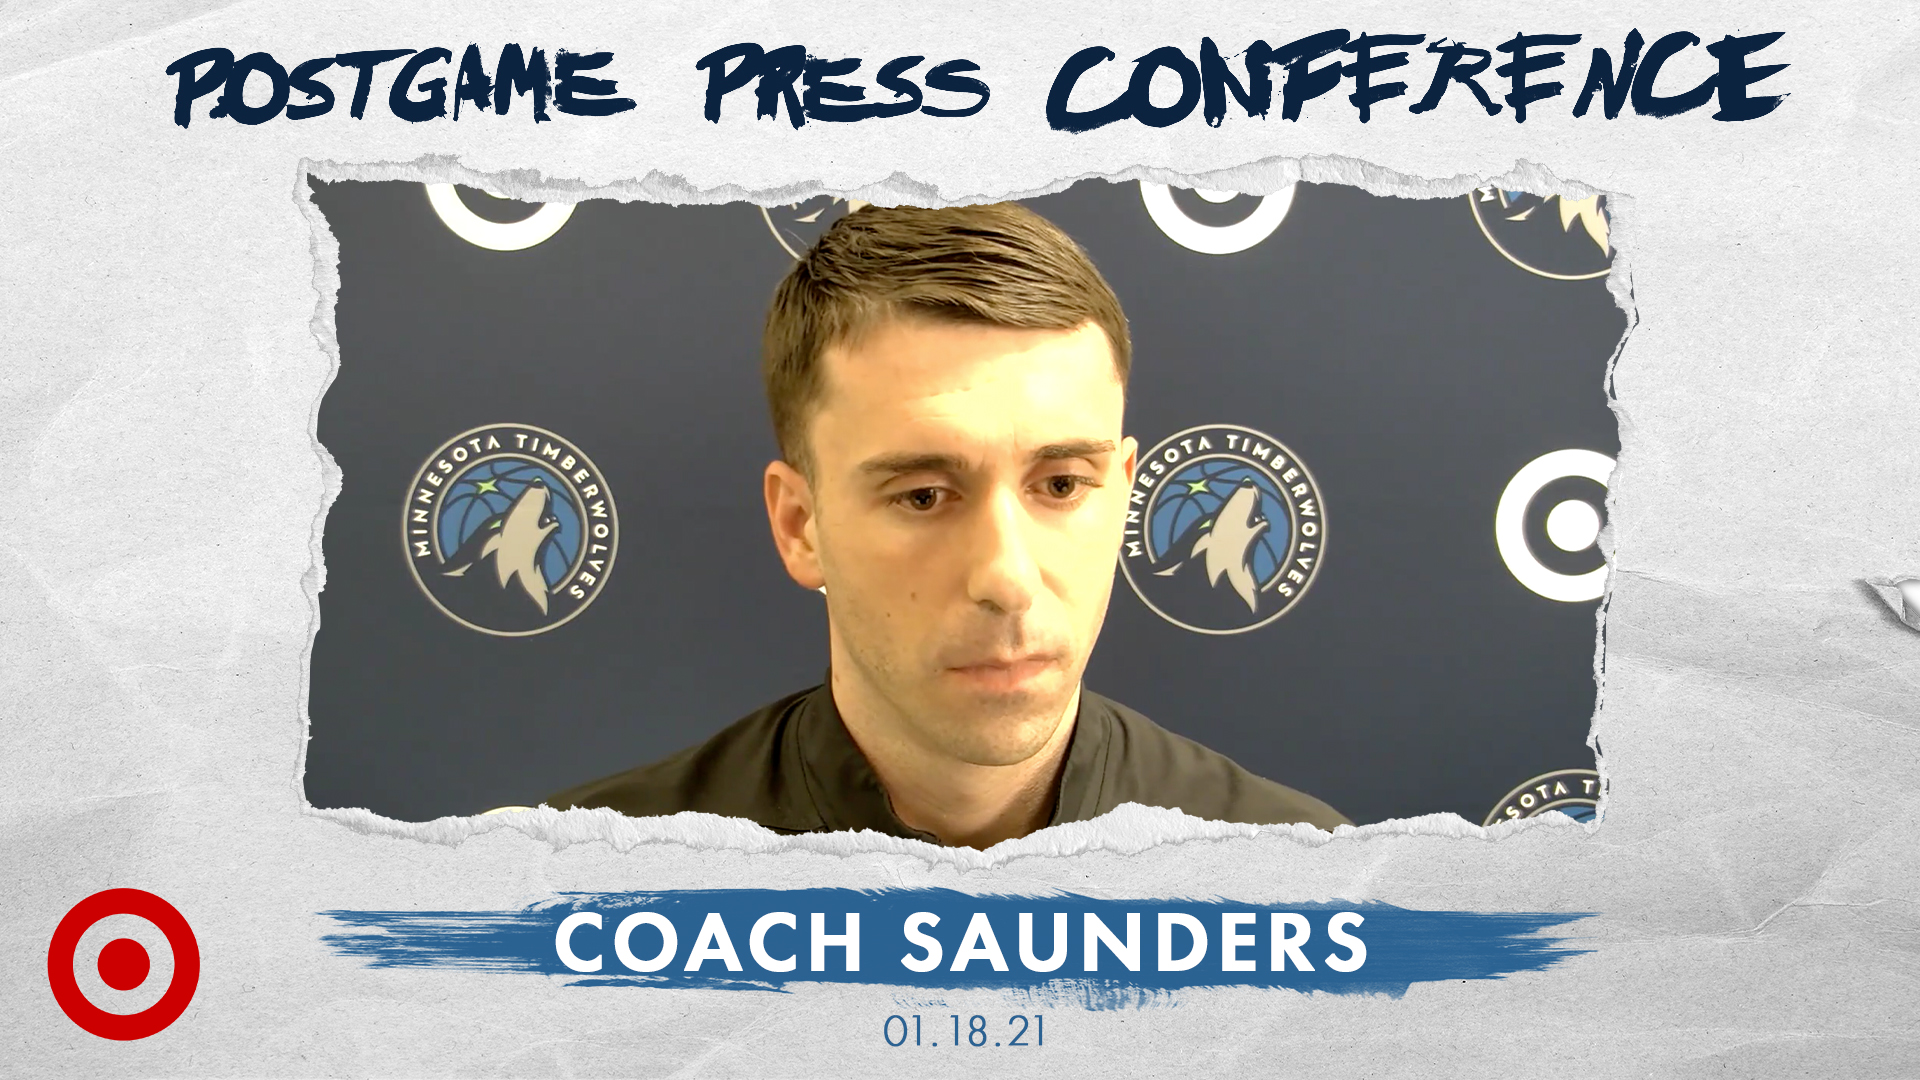 Coach Saunders Postgame Press Conference - January 18, 2021